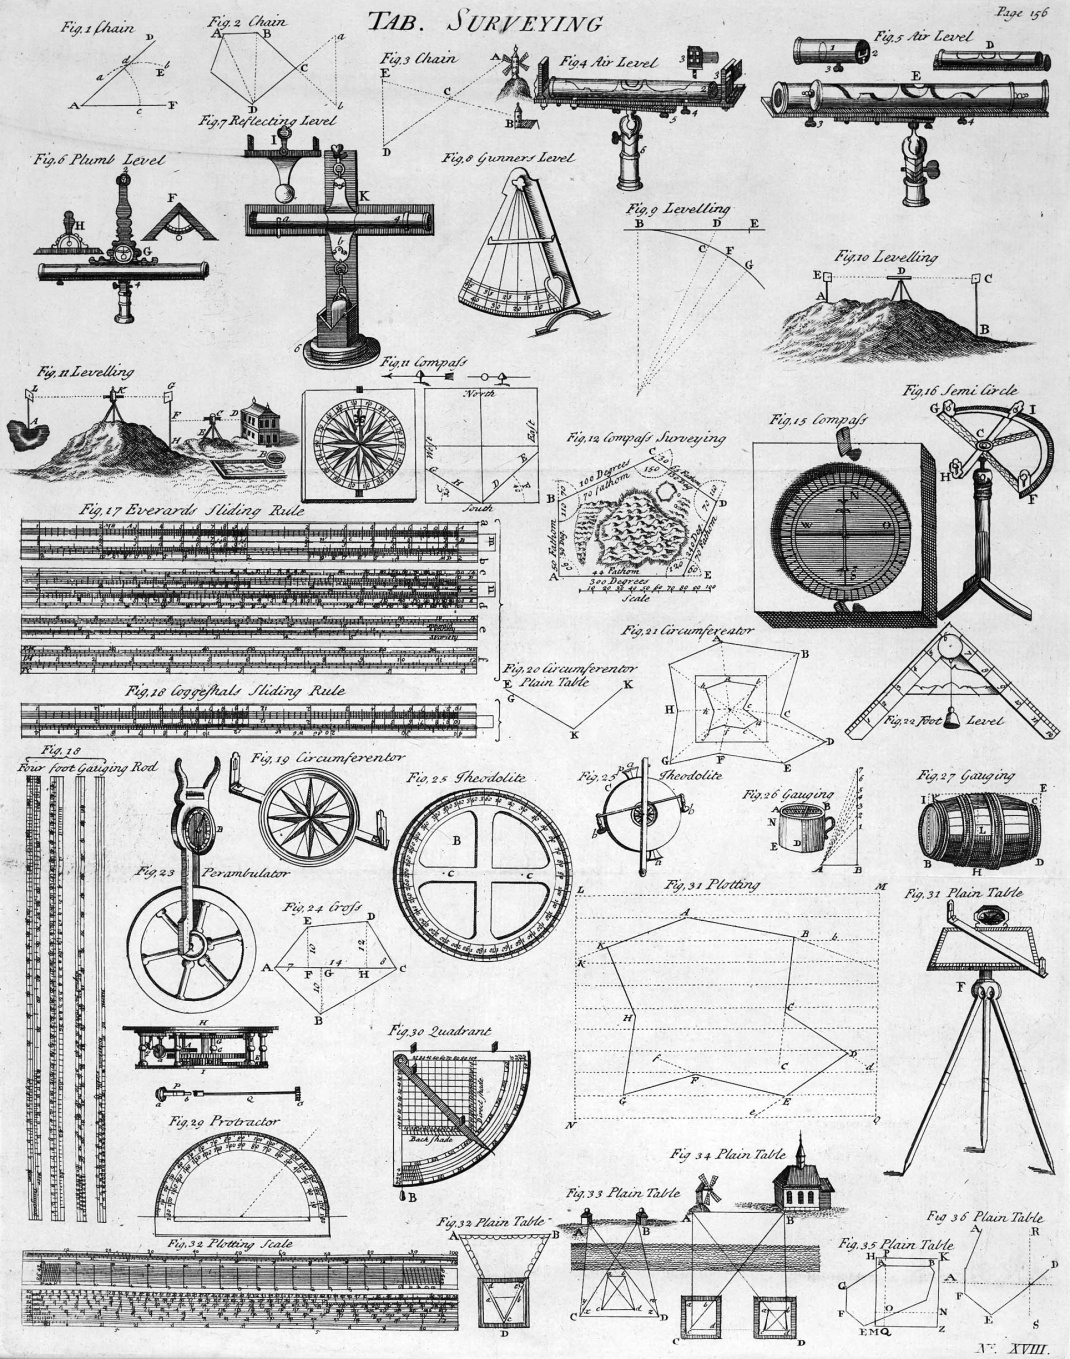 Tableis of Surveying, 1728 Cyclopedia: historical surveying instruments